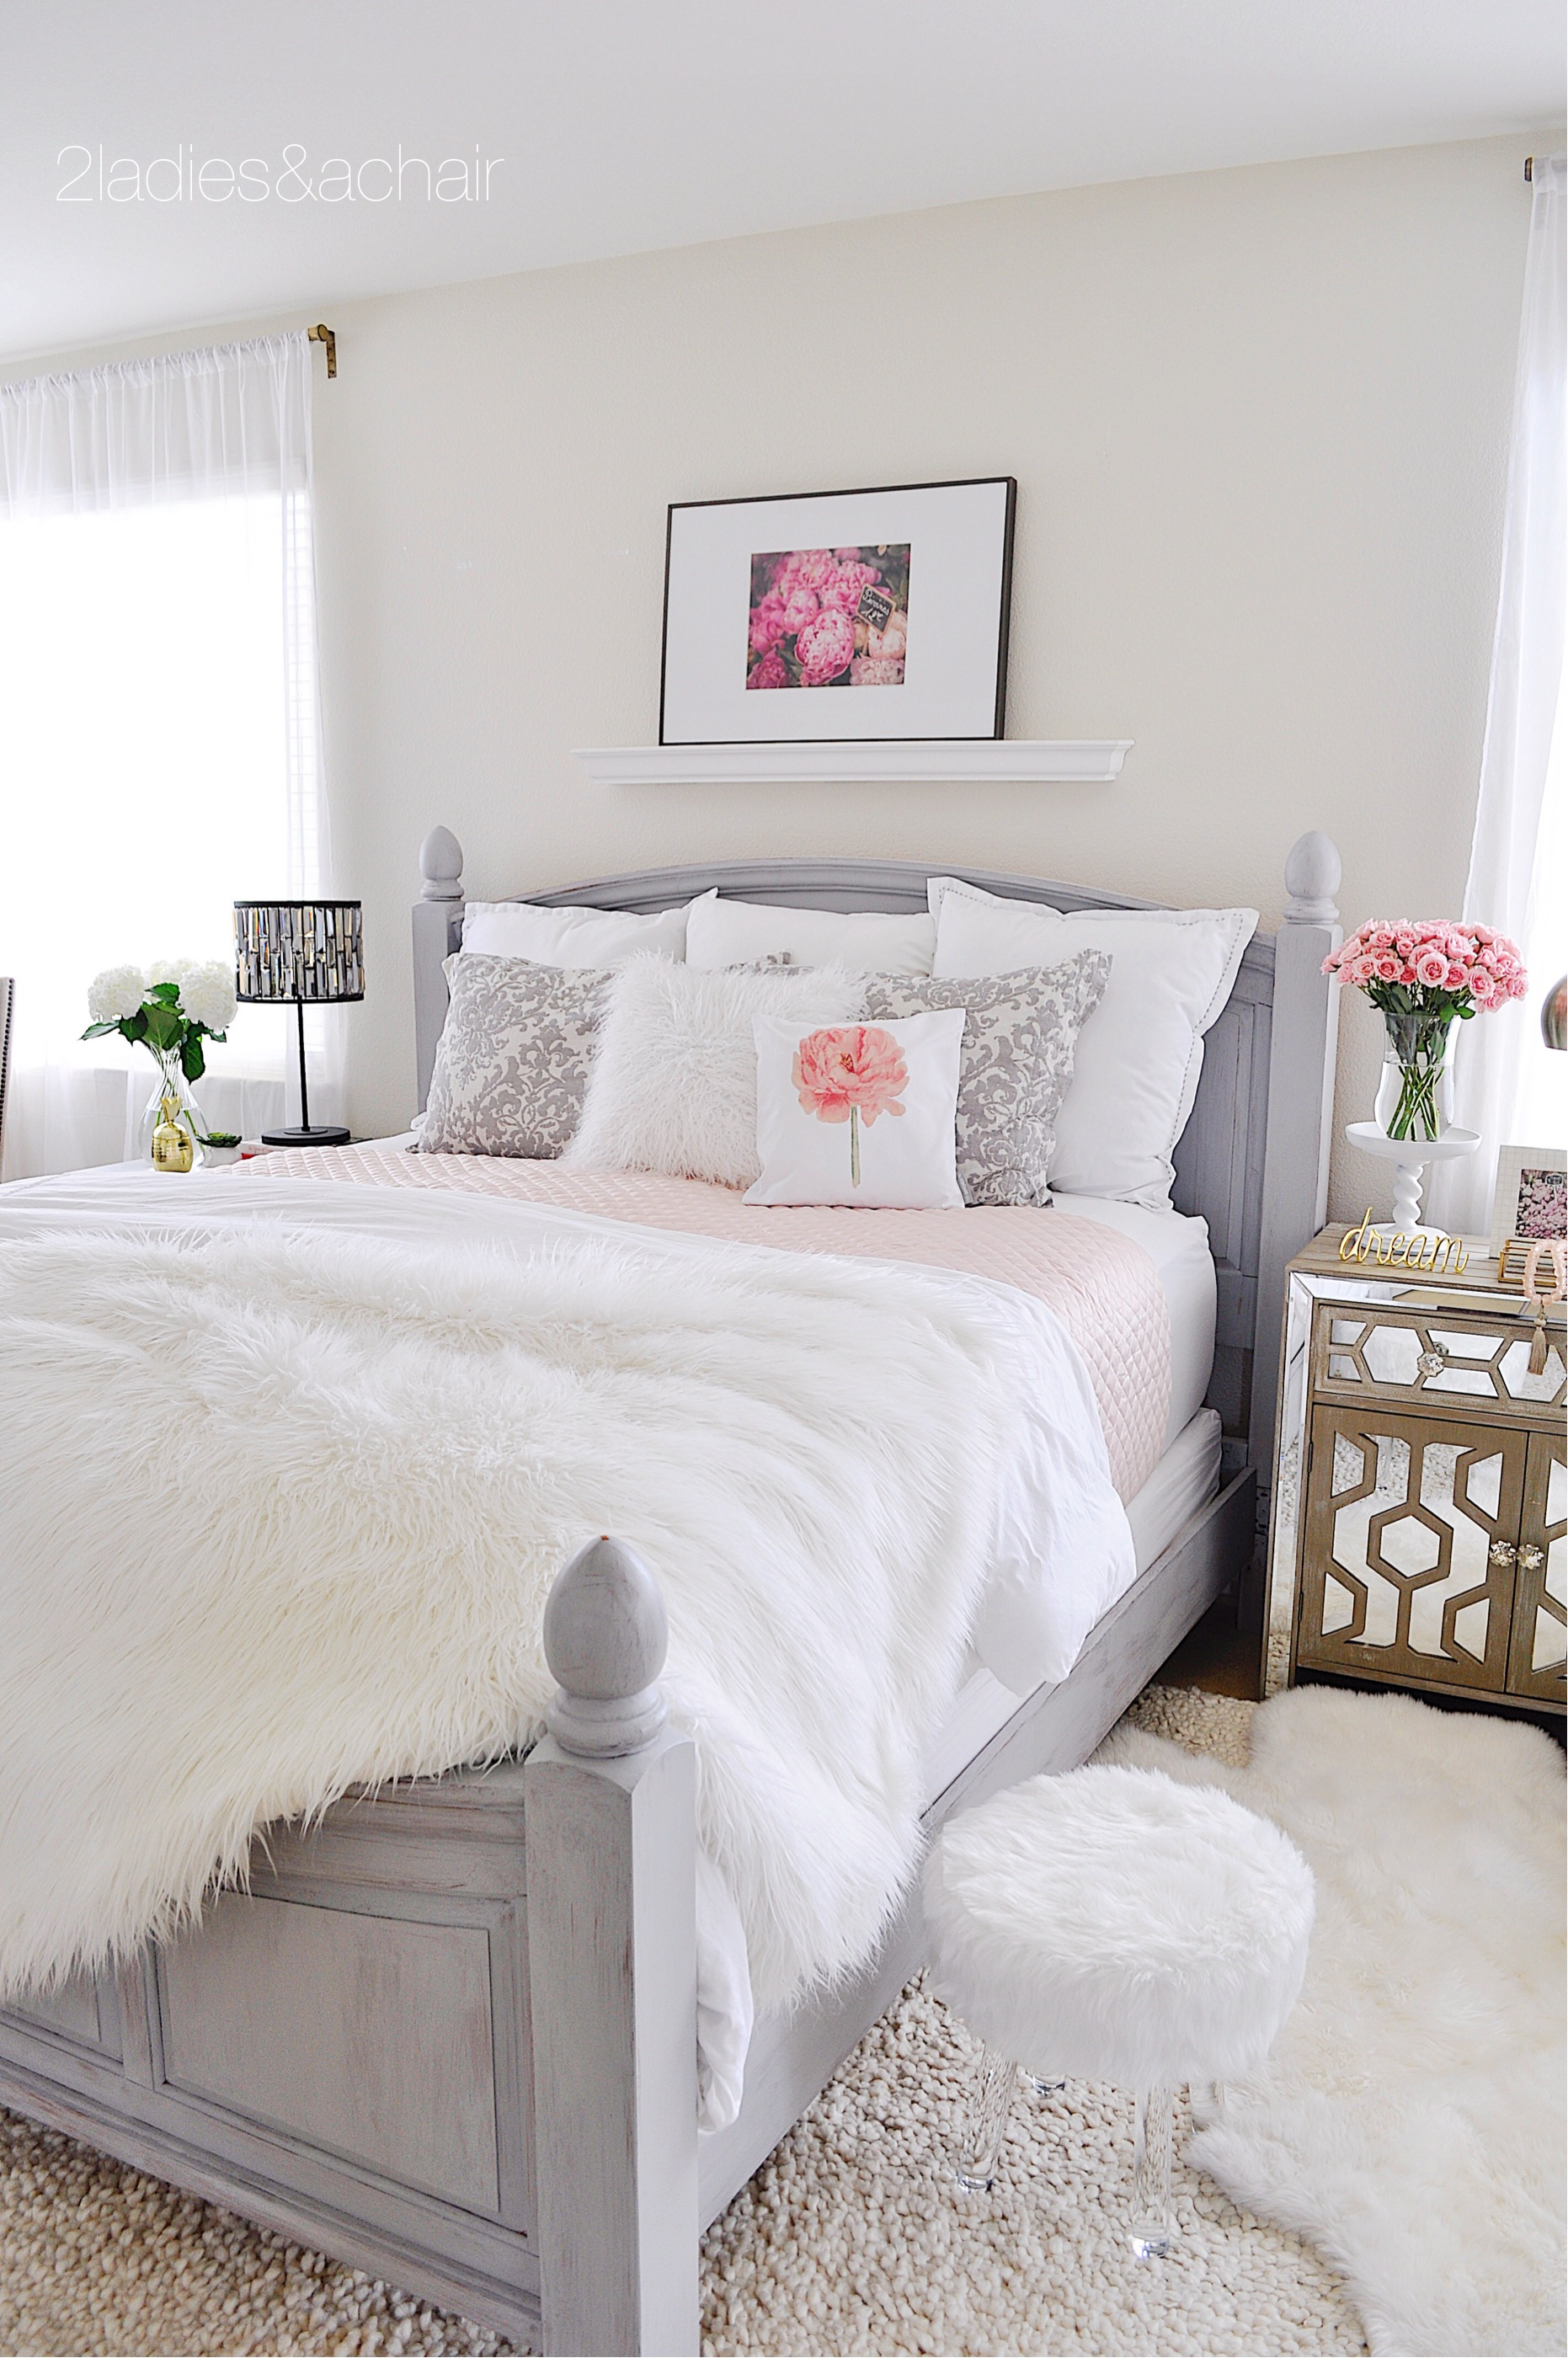 bedroom decorating ideas IMG_7689.JPG